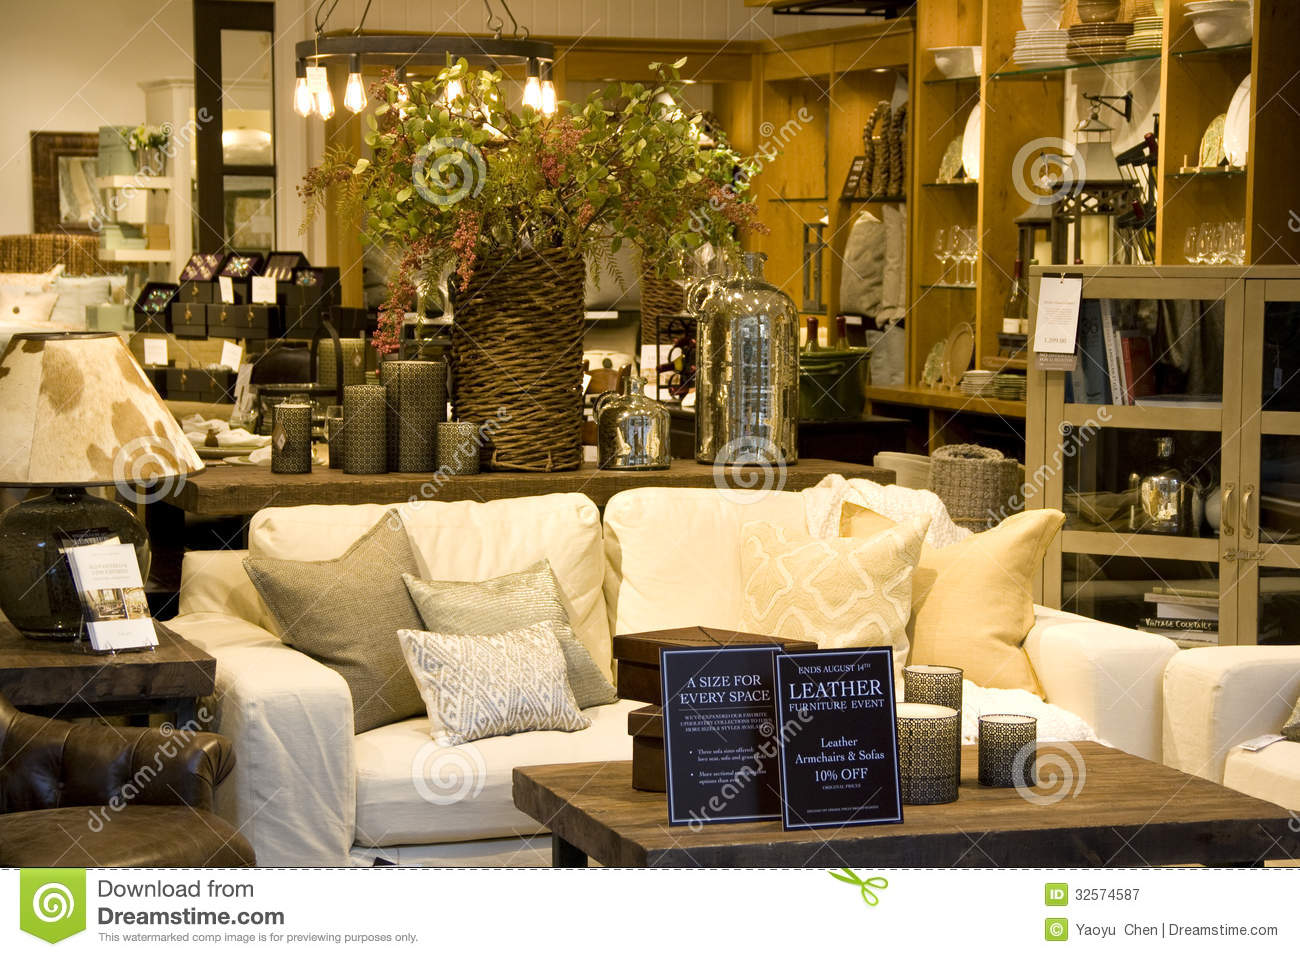 Furniture home decor store editorial photography image for In home decor store